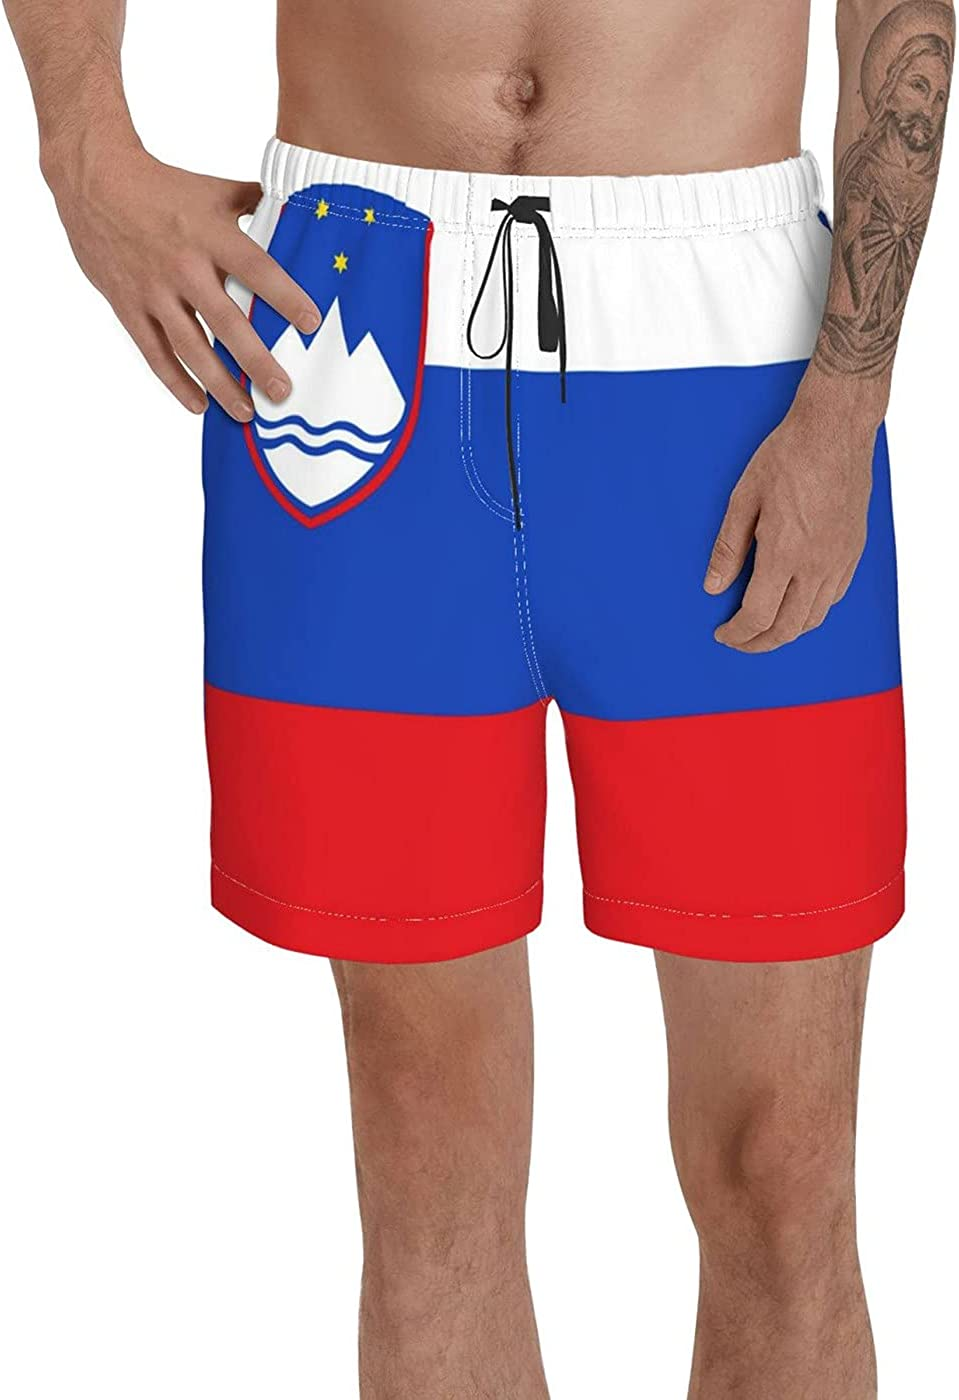 Count Slovenia Flag Men's 3D Printed Funny Summer Quick Dry Swim Short Board Shorts with